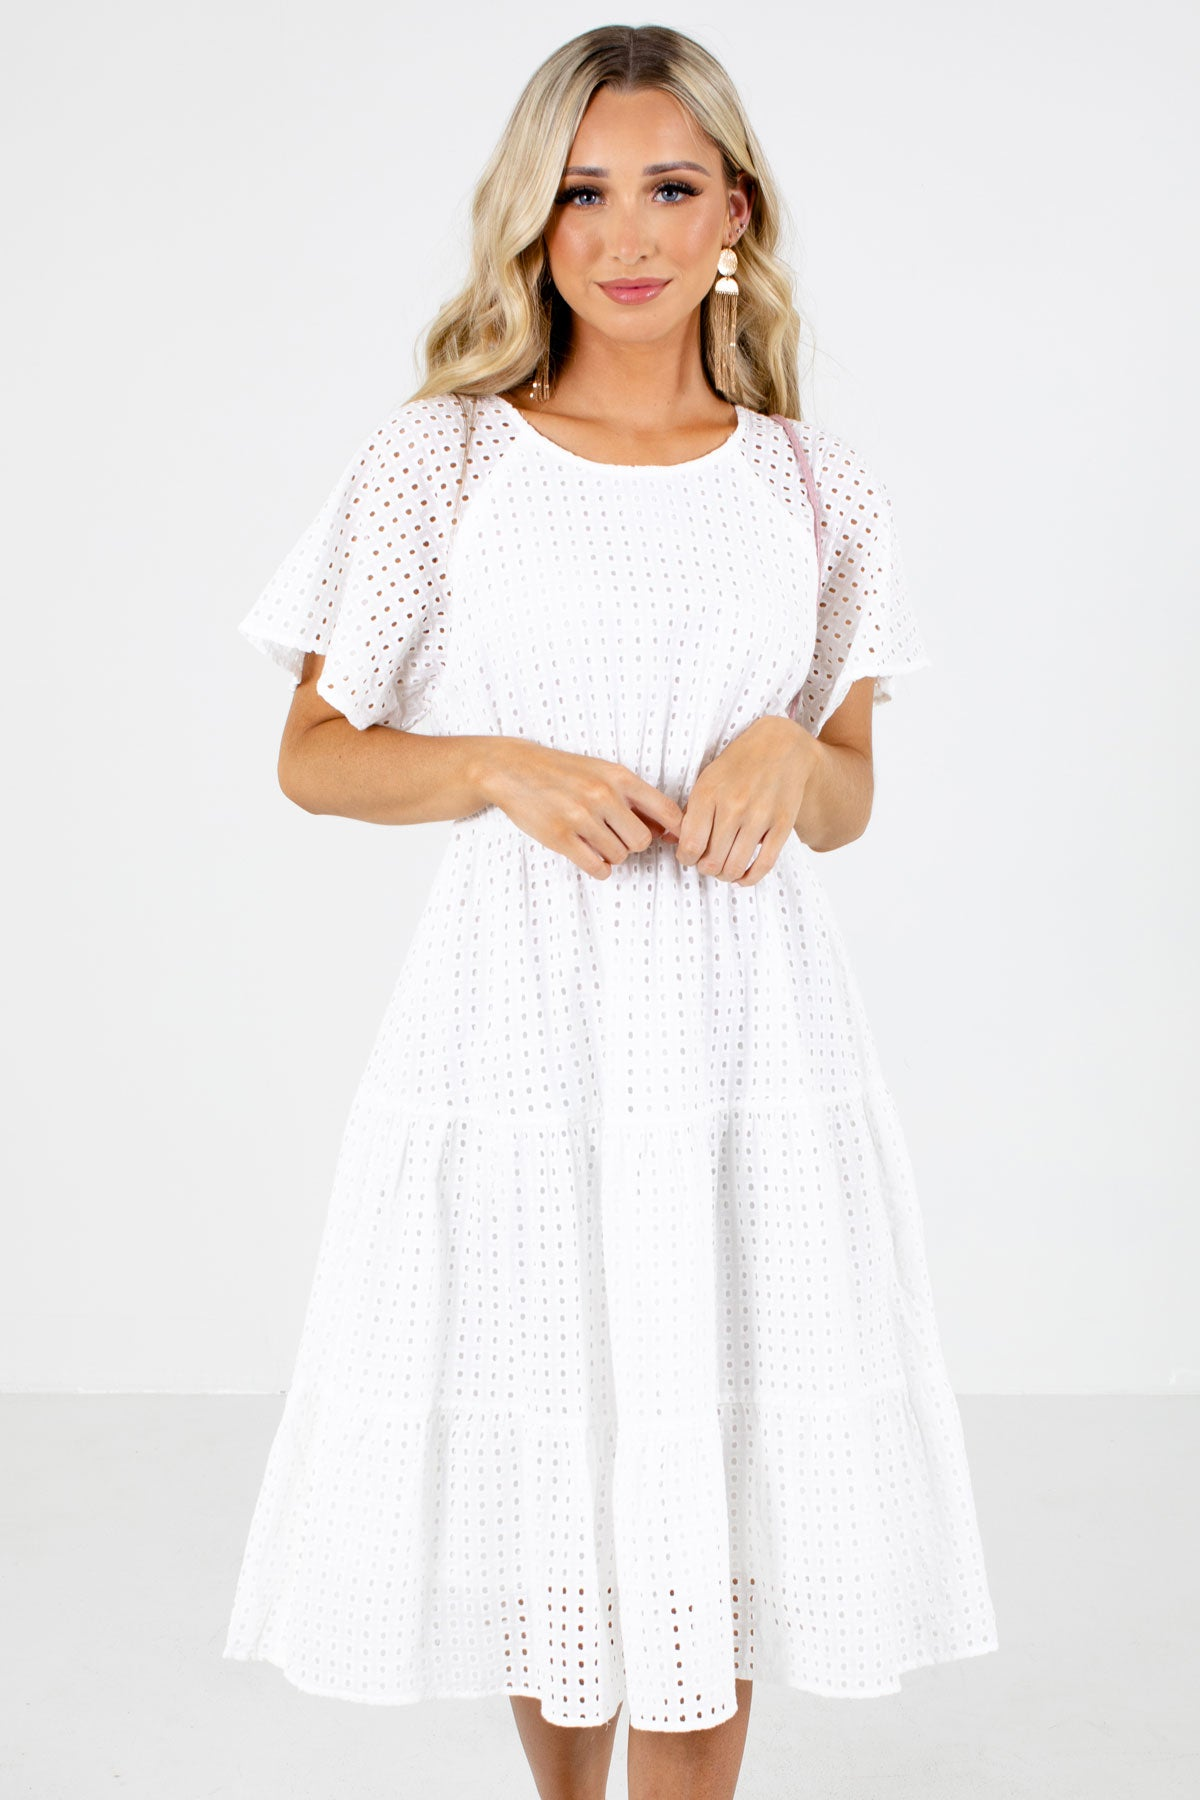 Women's White Spring and Summertime Boutique Clothing